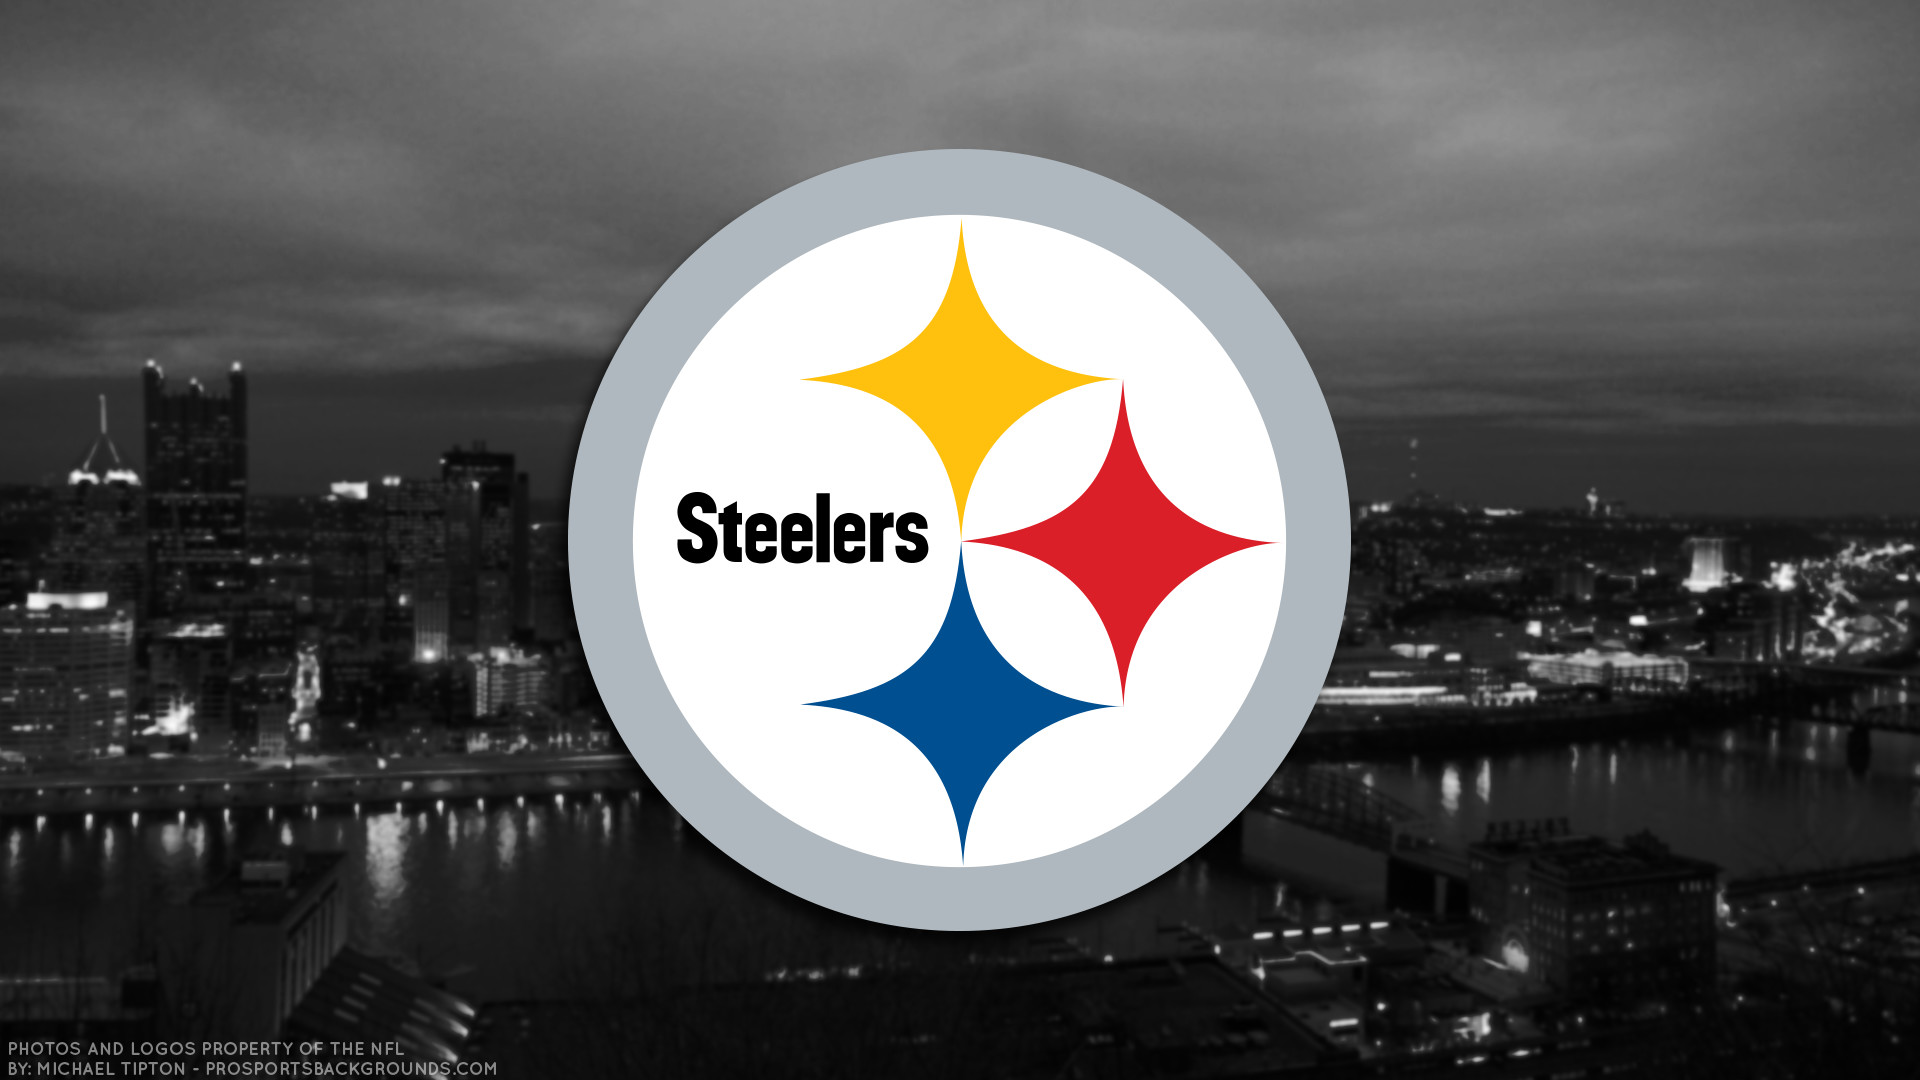 Pittsburgh Steelers 2017 football logo wallpaper pc desktop computer .